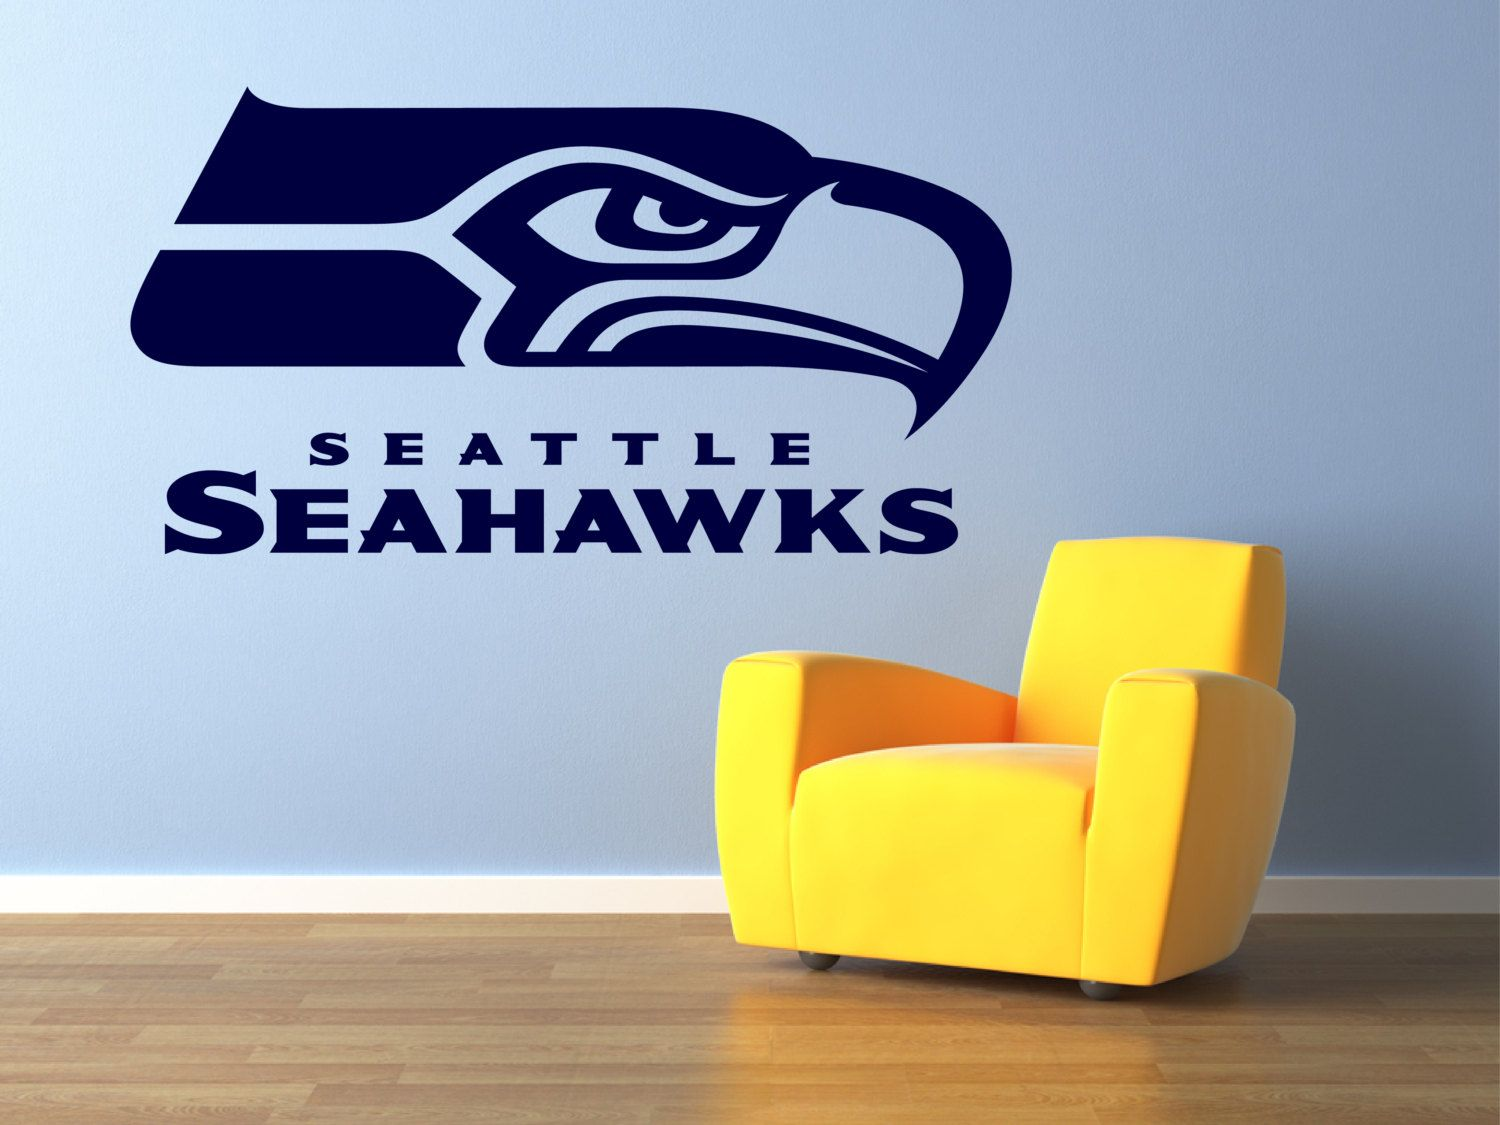 Seattle Seahawks Premium Removable Wall Art Decor By Signs4half 18 00